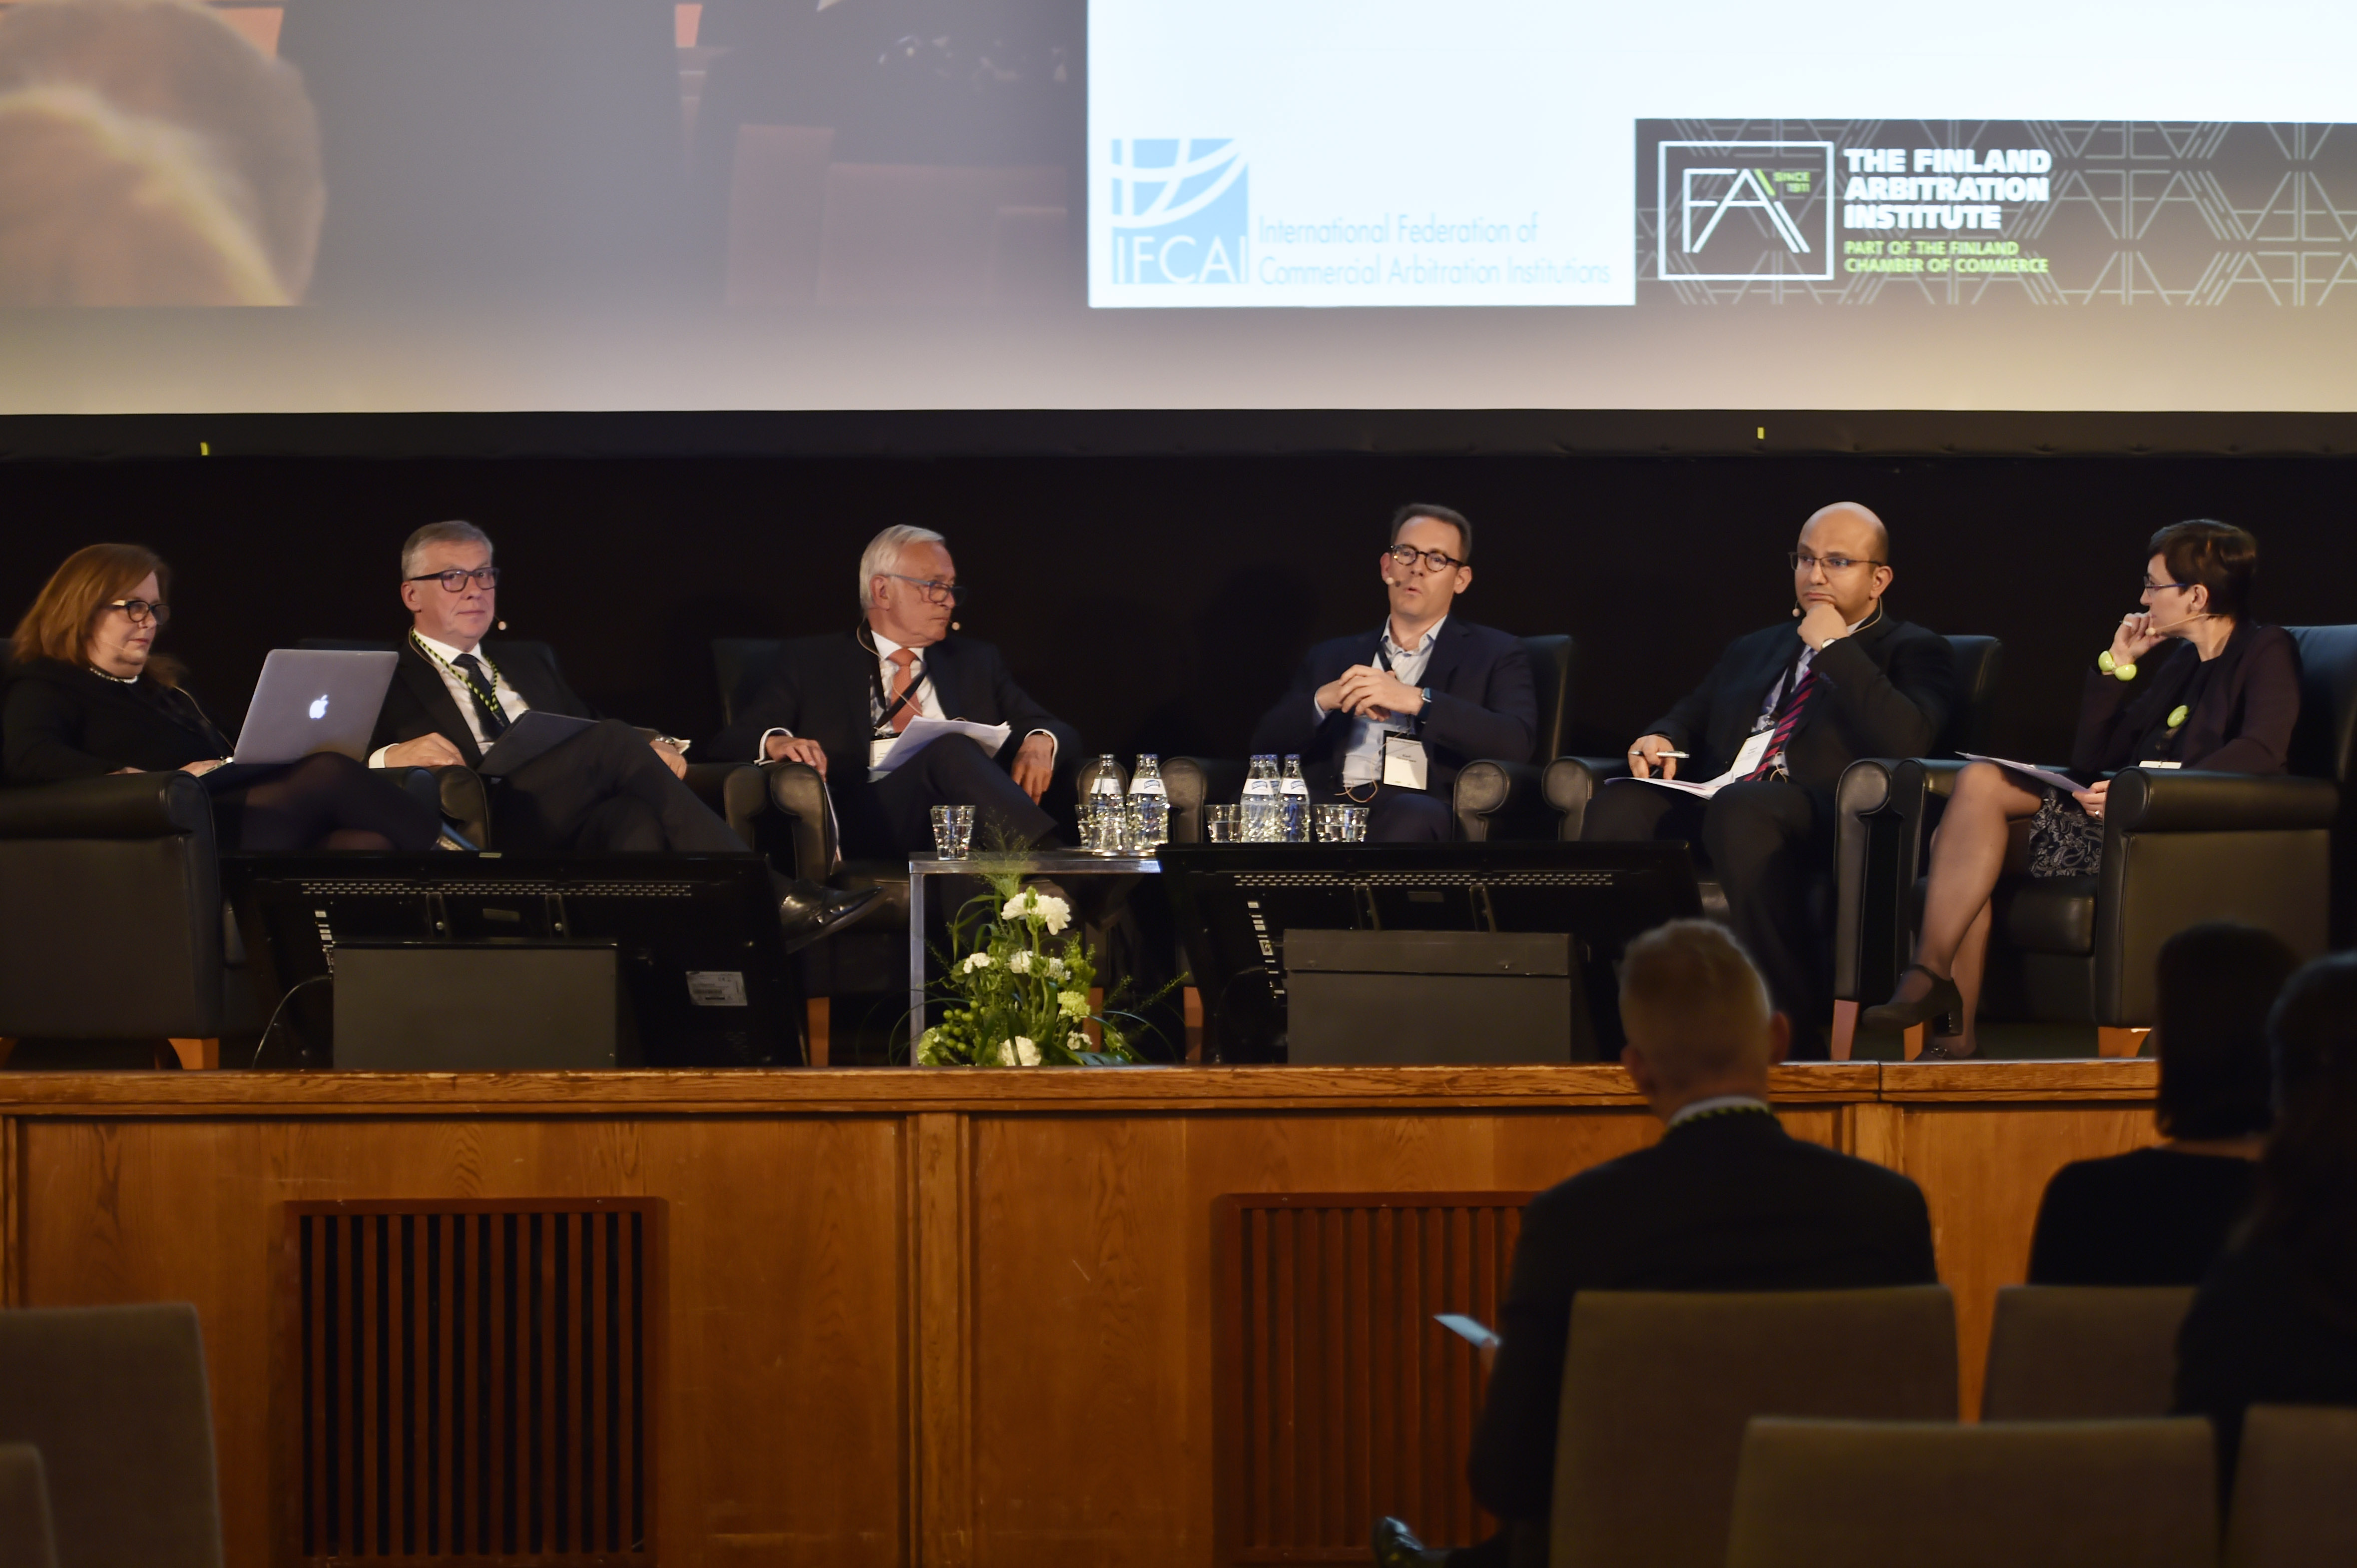 The 15th IFCAI Biennial Conference in Helsinki: Finding the